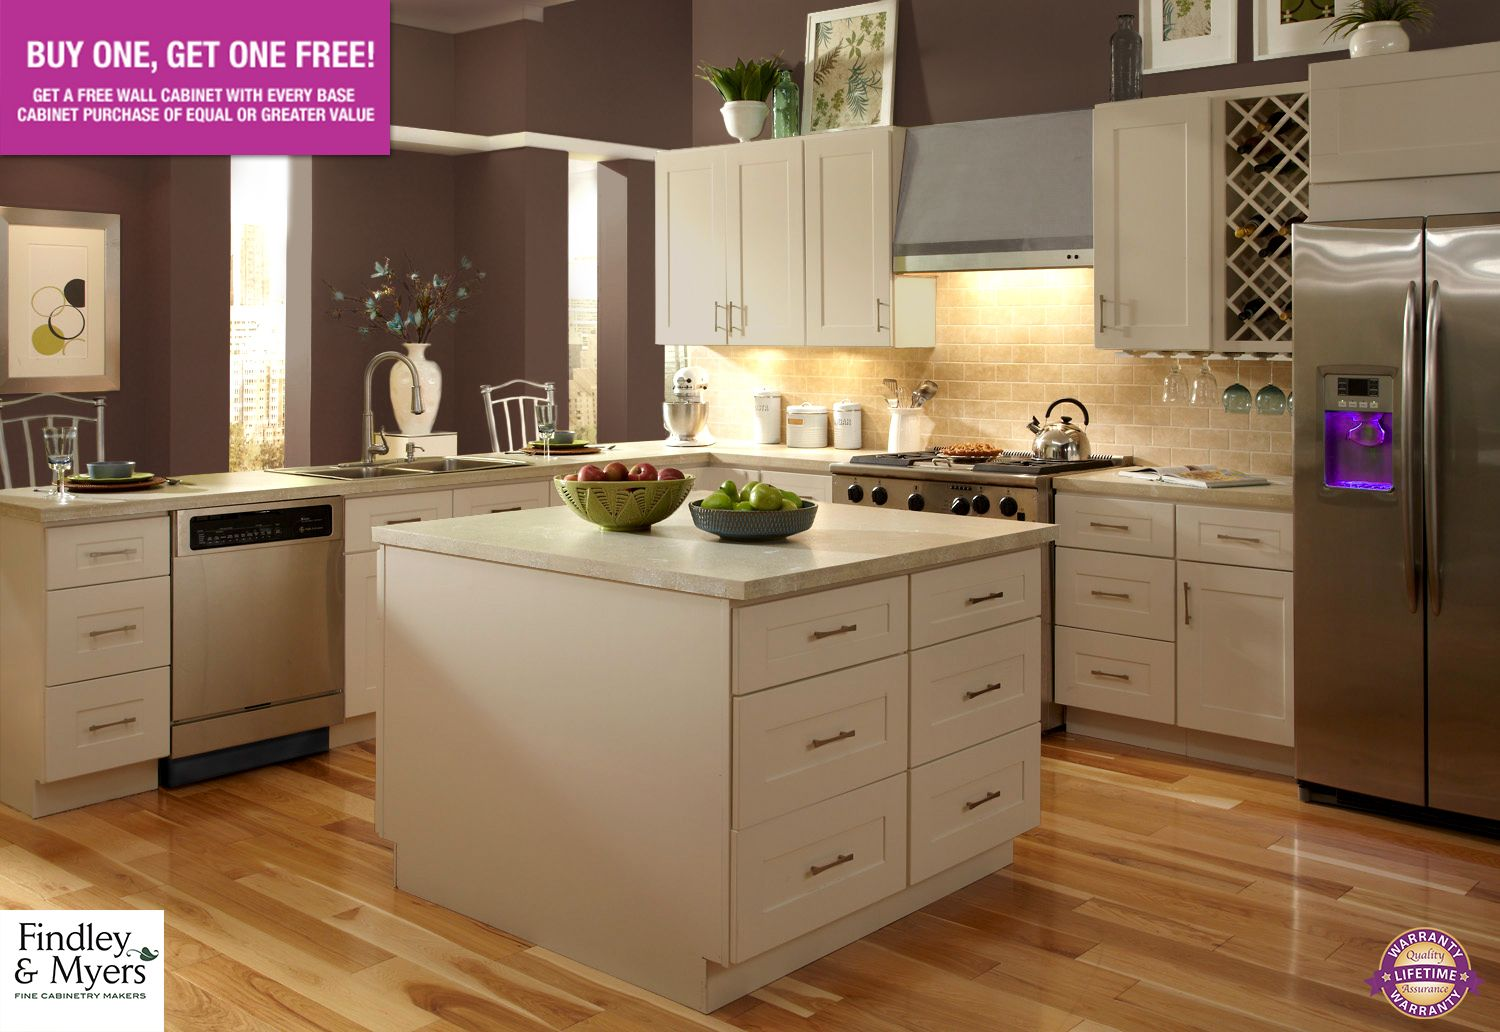 Cabinets To Go Nantucket Cabinets To Go Cost Of Kitchen Cabinets Kitchen Cabinets Prices